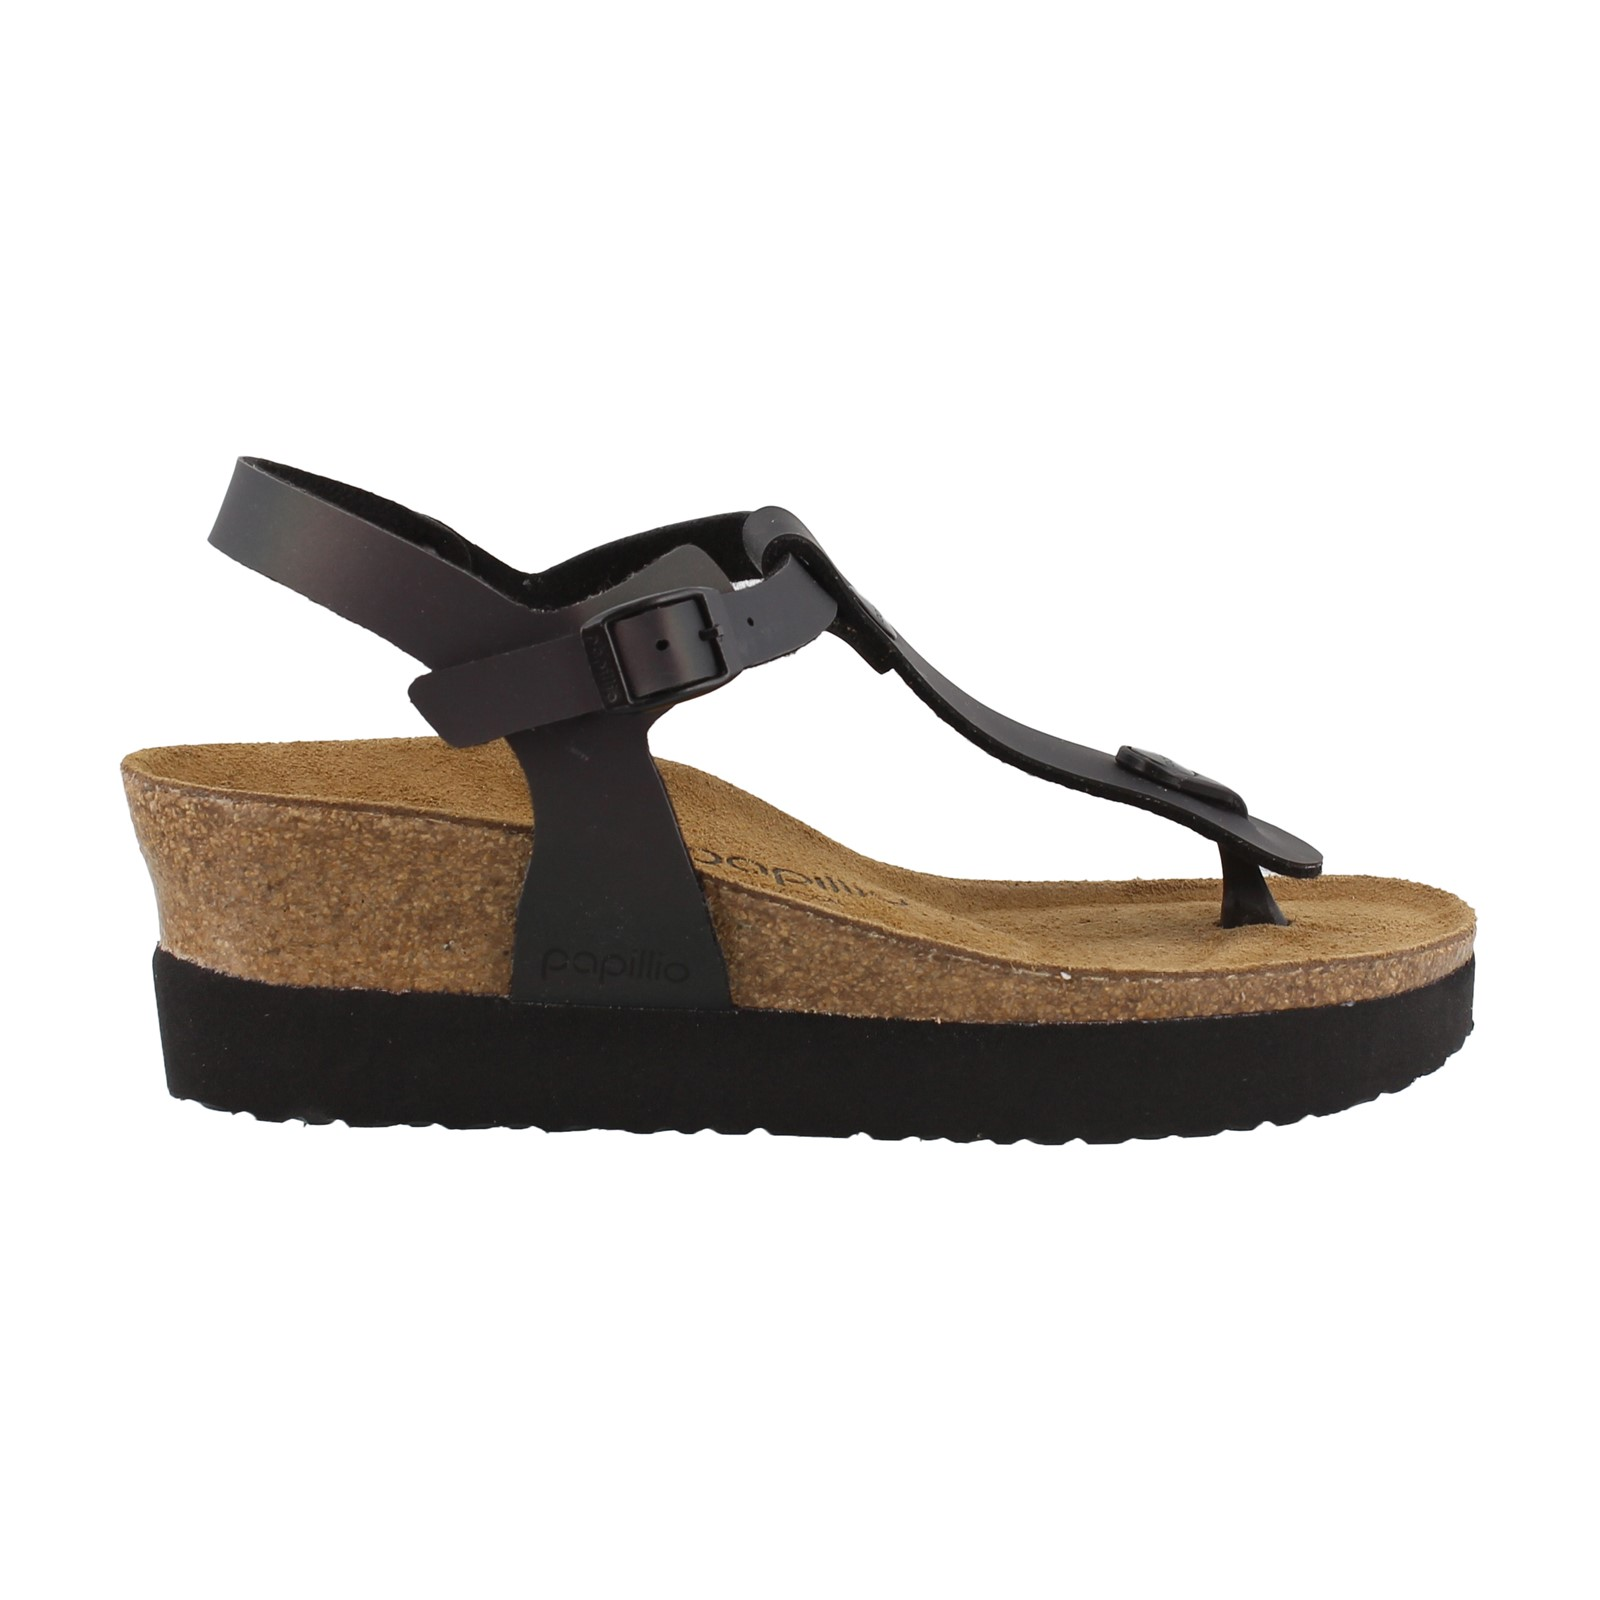 Women's Birkenstock, Ashley Sandal